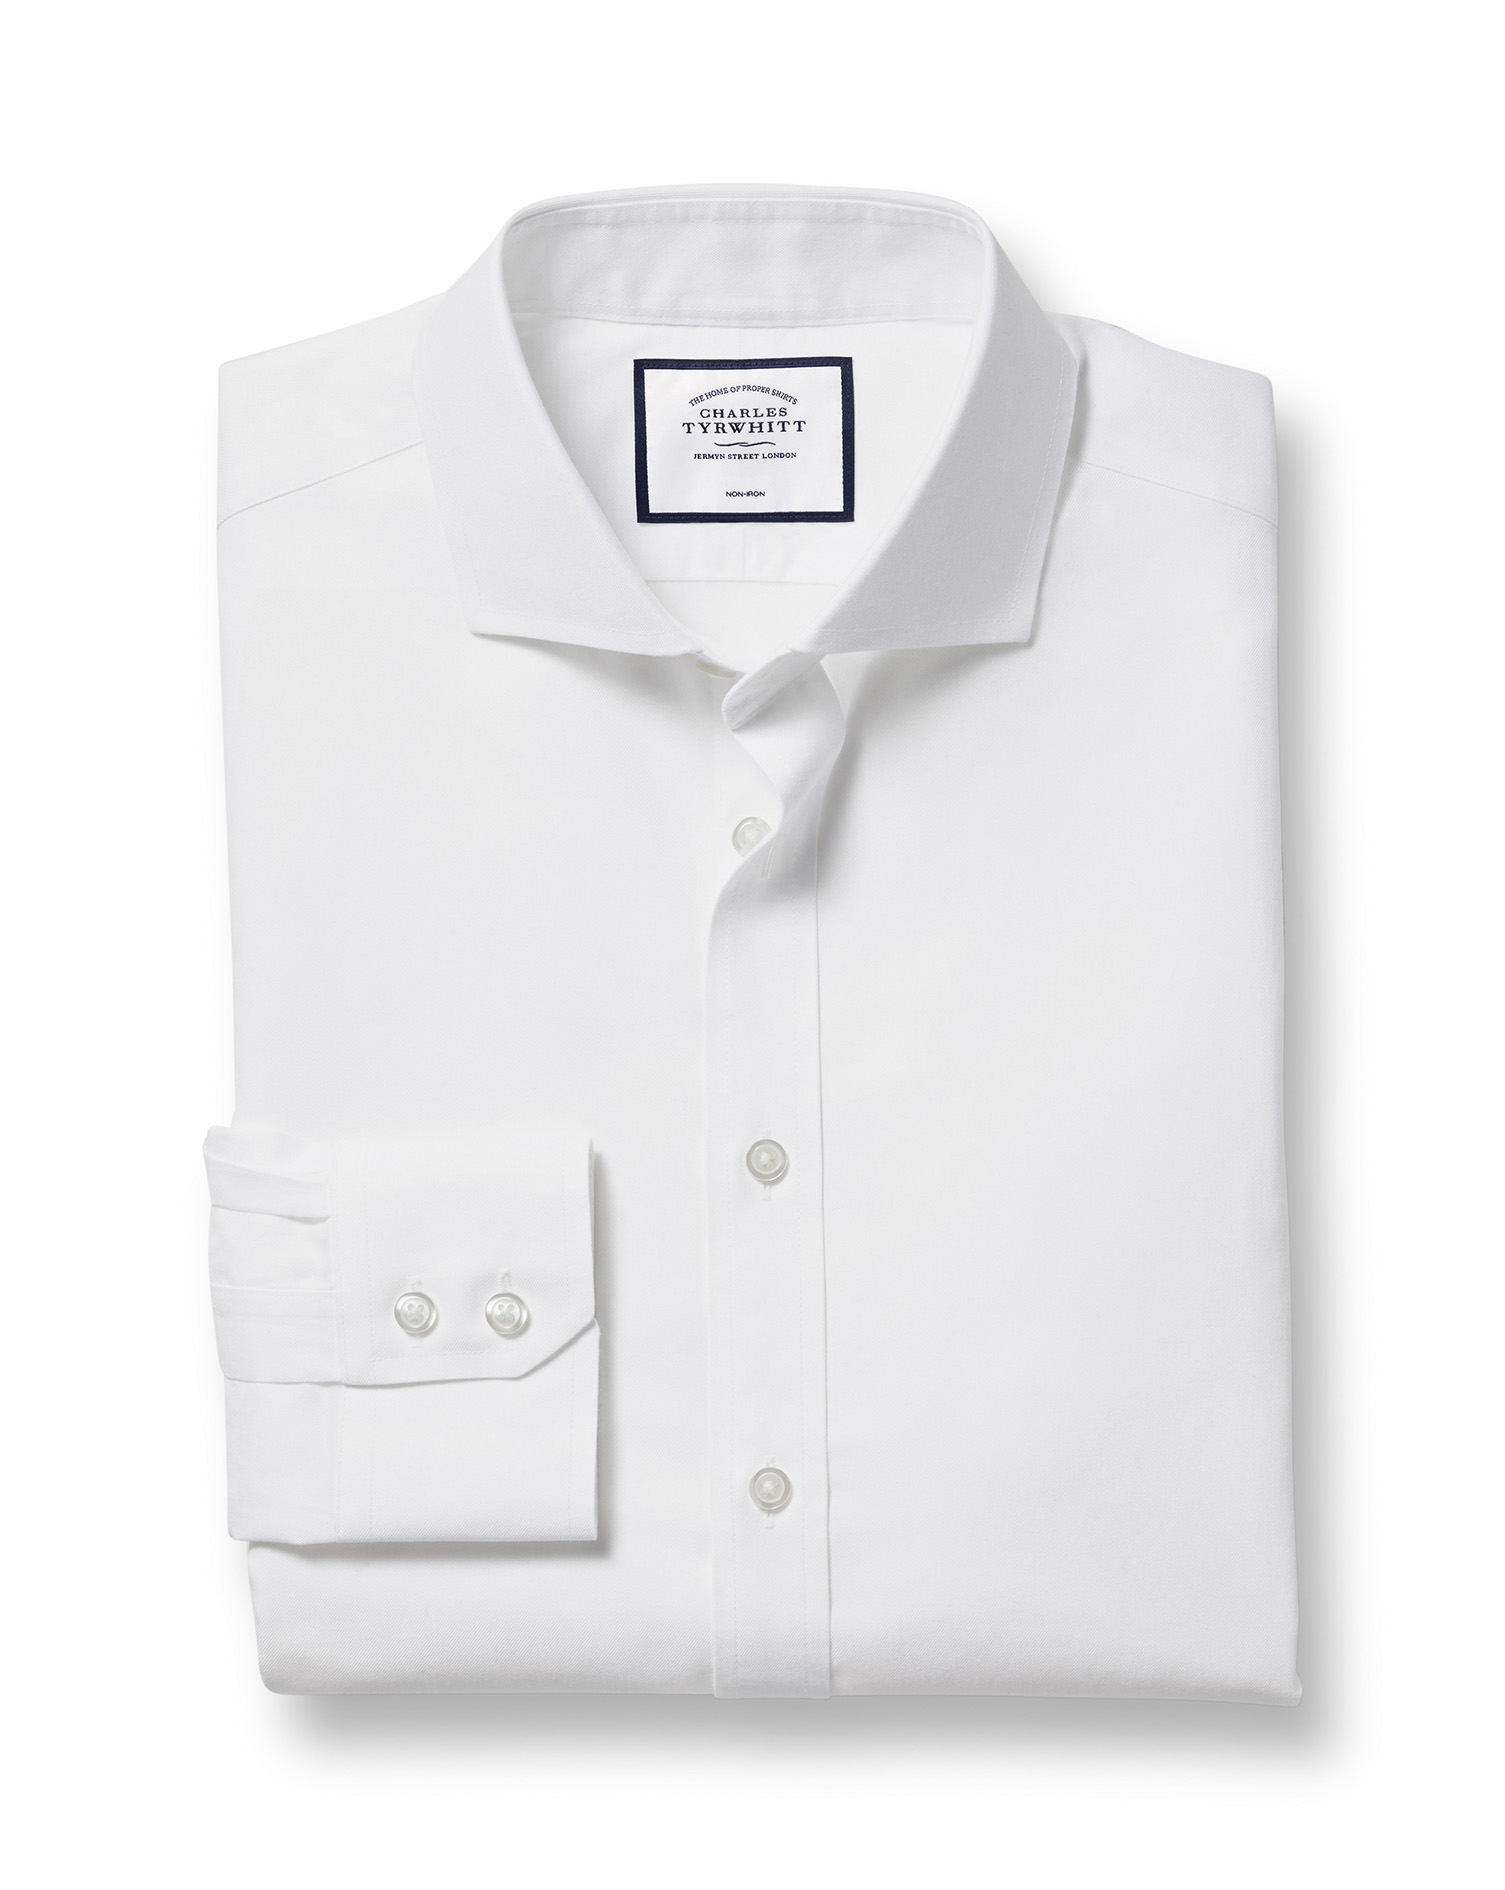 Slim Fit Extreme Cutaway Non-Iron Twill White Cotton Formal Shirt Double Cuff Size 16/36 by Charles